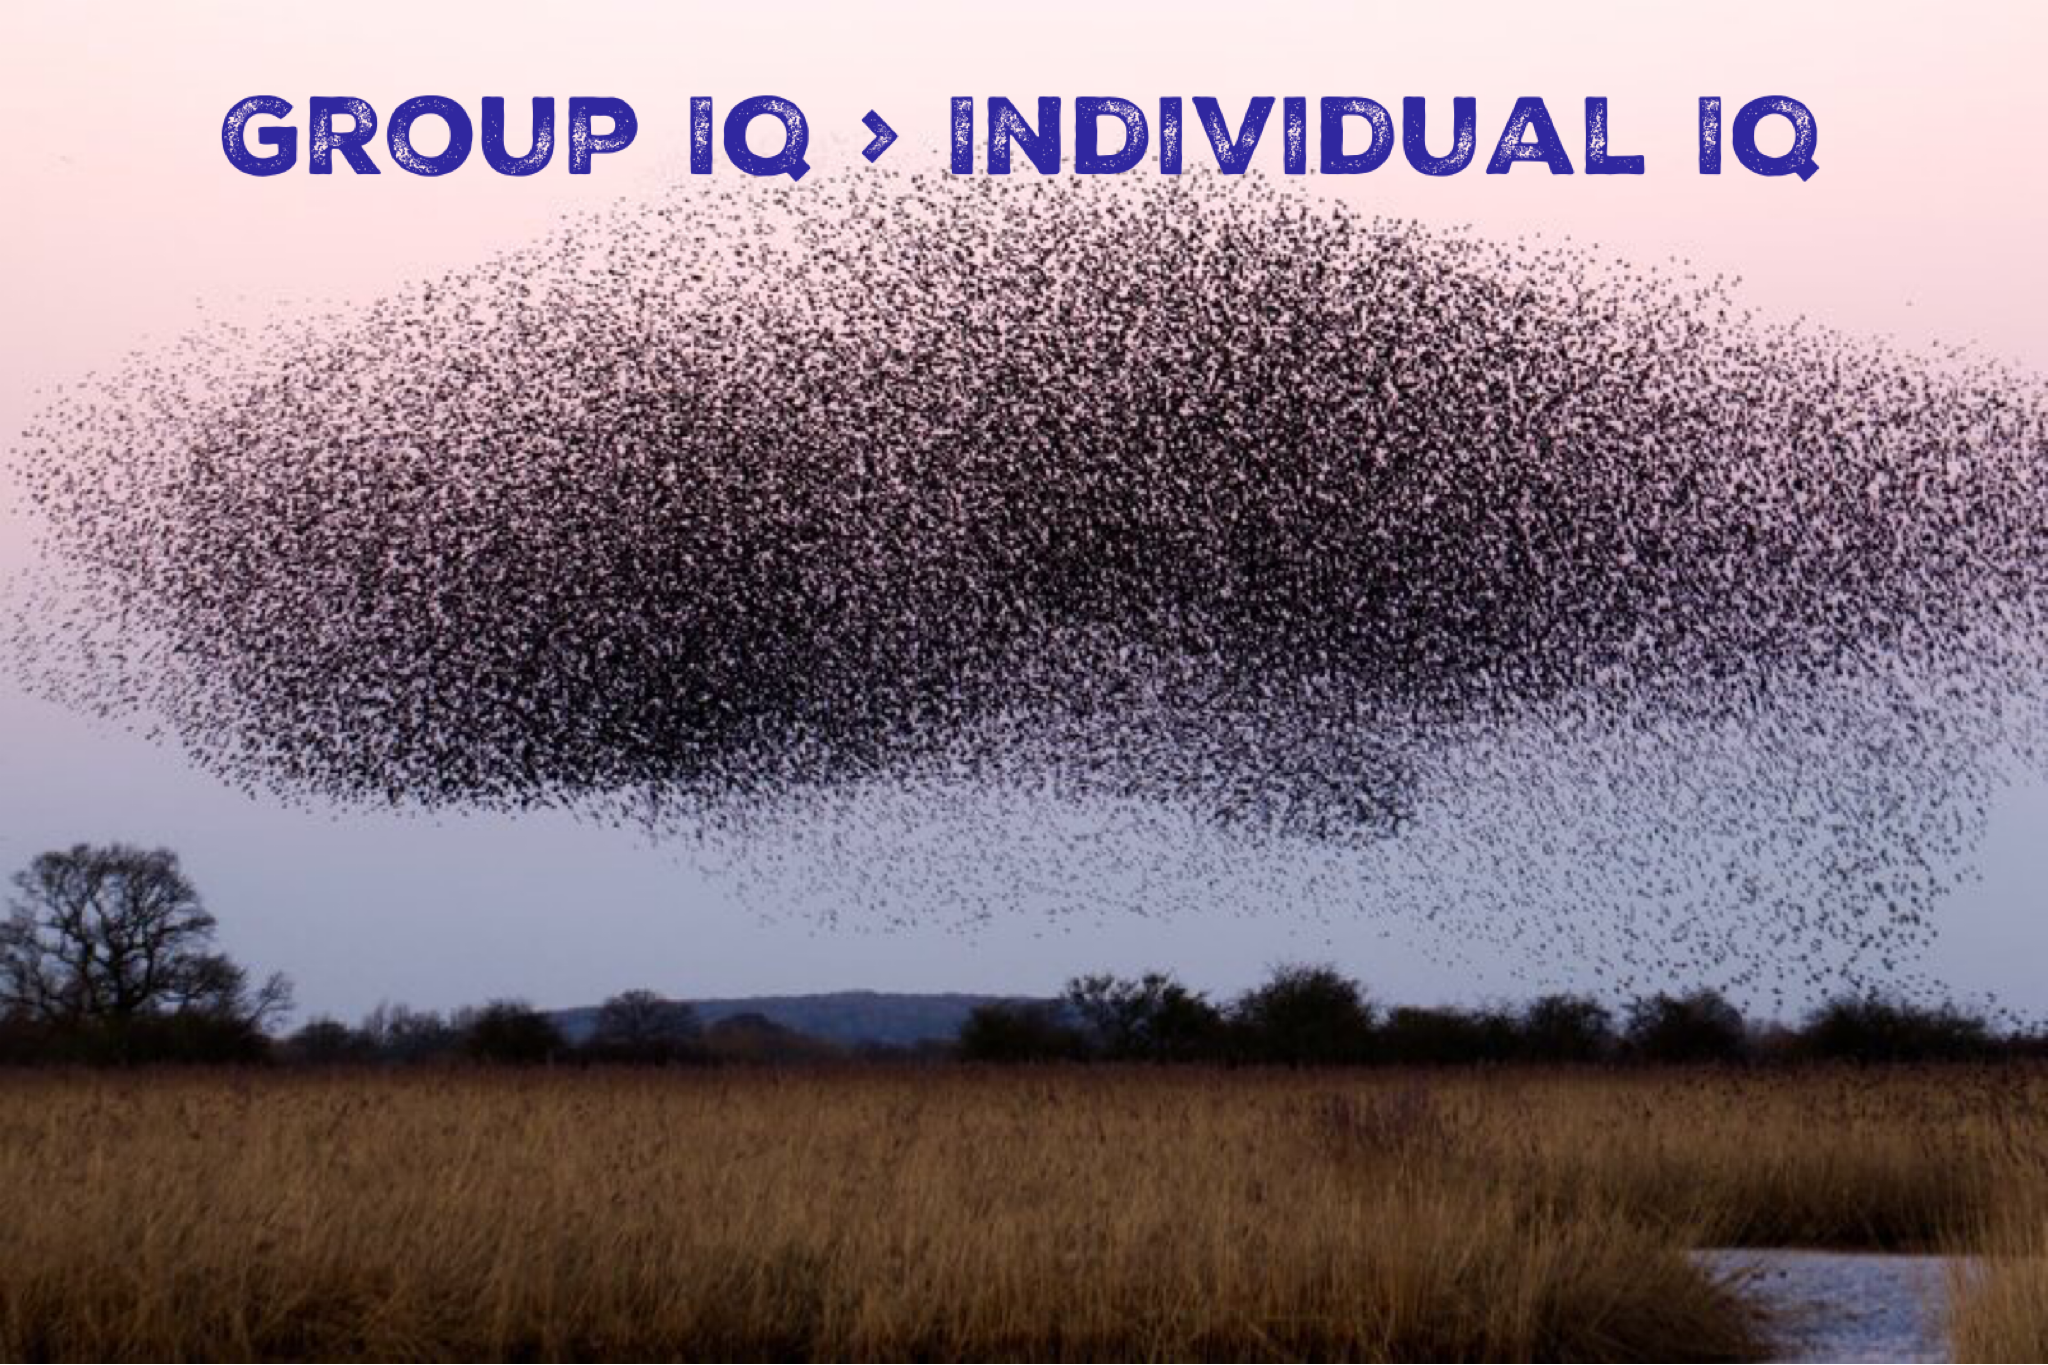 Group IQ > Individual IQ